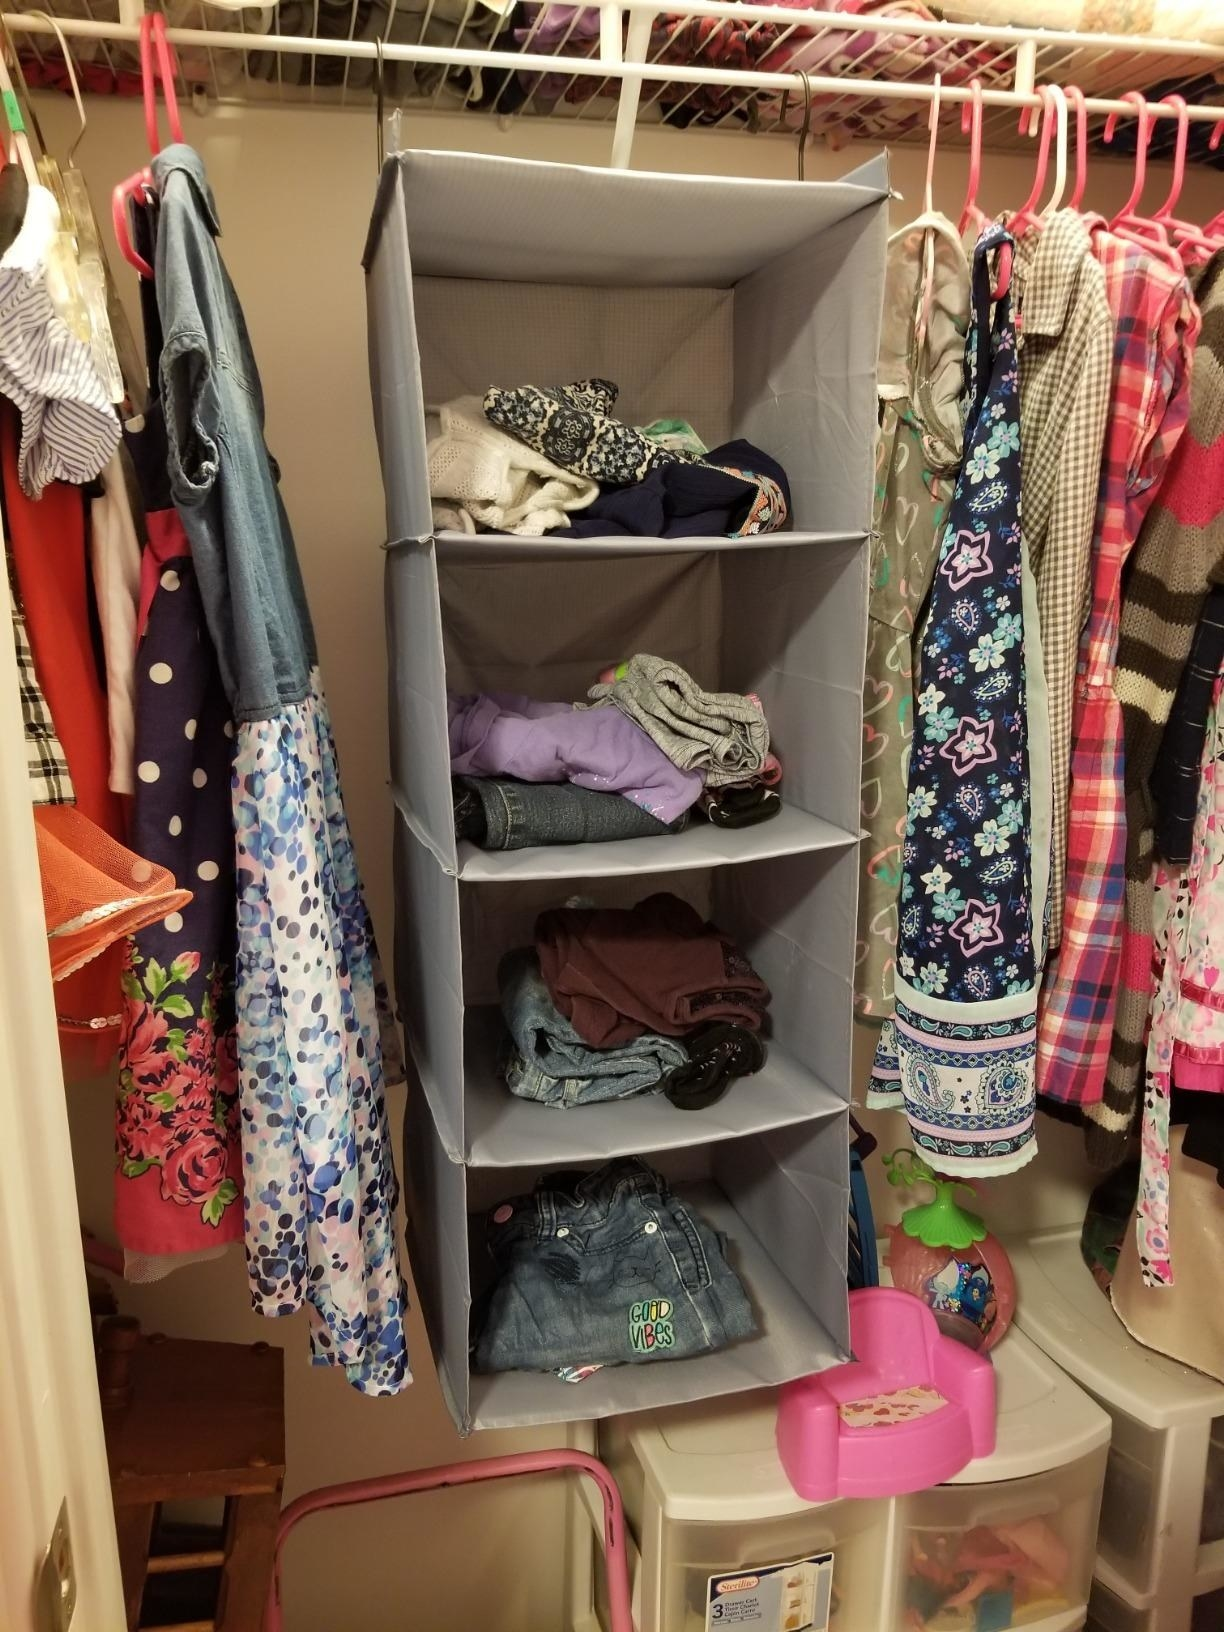 Reviewer pic of the four-tier cubby hanging in a closet with clothes folded in each one.